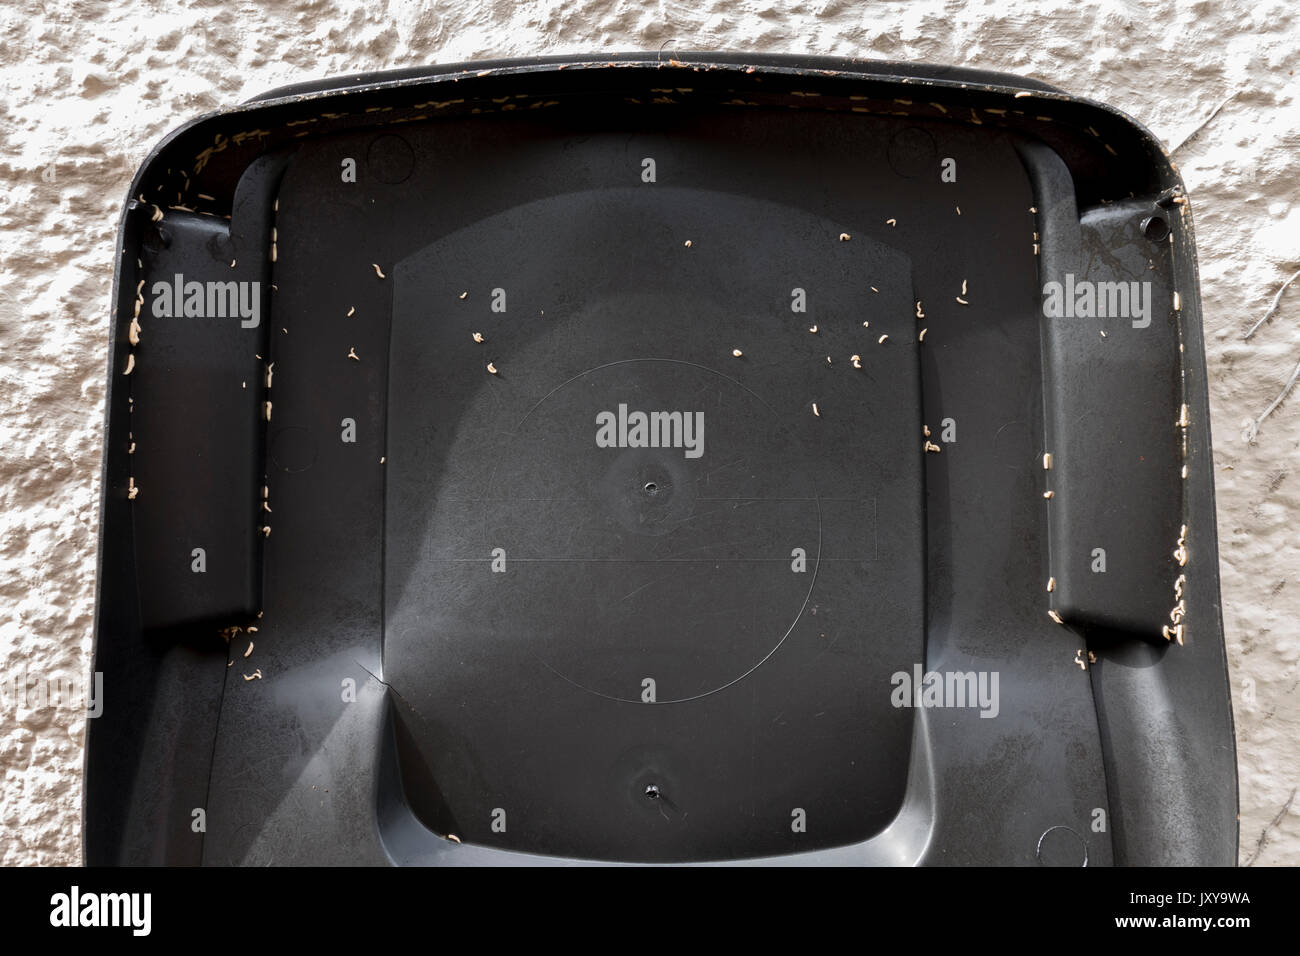 The summer problem of maggots on a food bin lid after a spell of hot weather. England, UK. - Stock Image